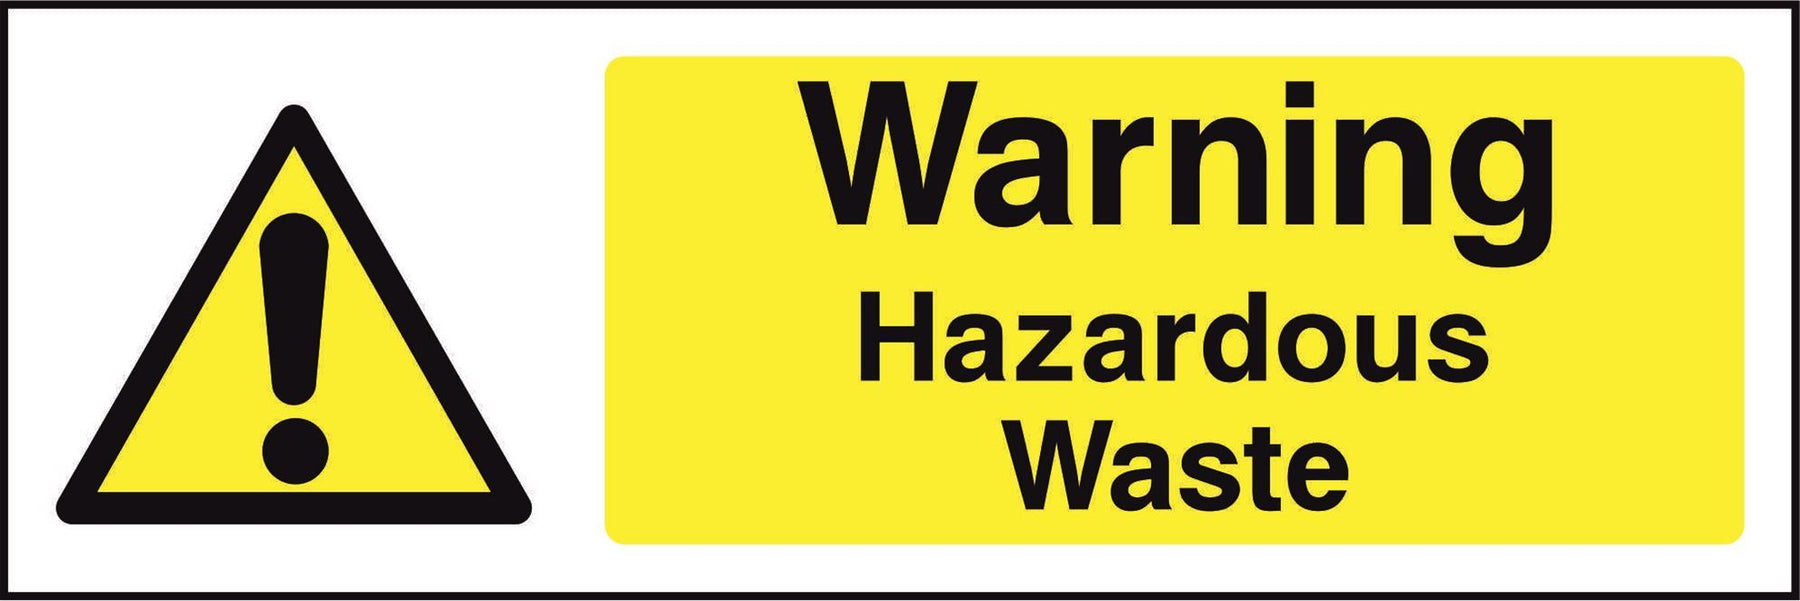 Warning Hazardous Waste